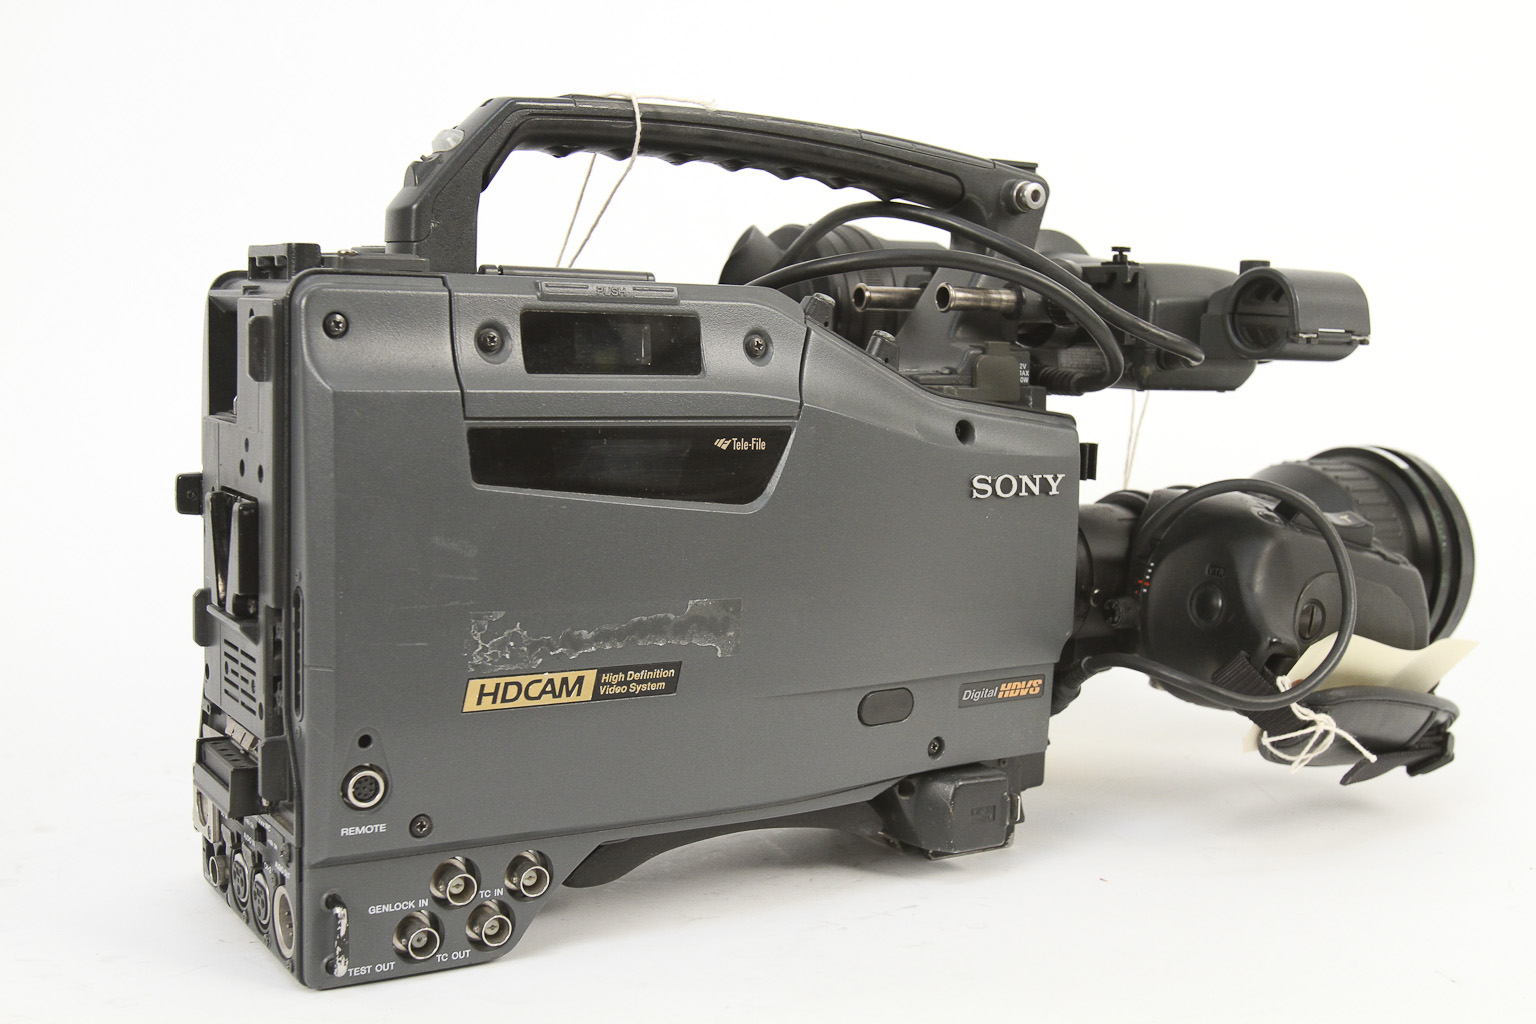 Sony Hdw730 Hd Eng Camera Alan Gordon Enterprises